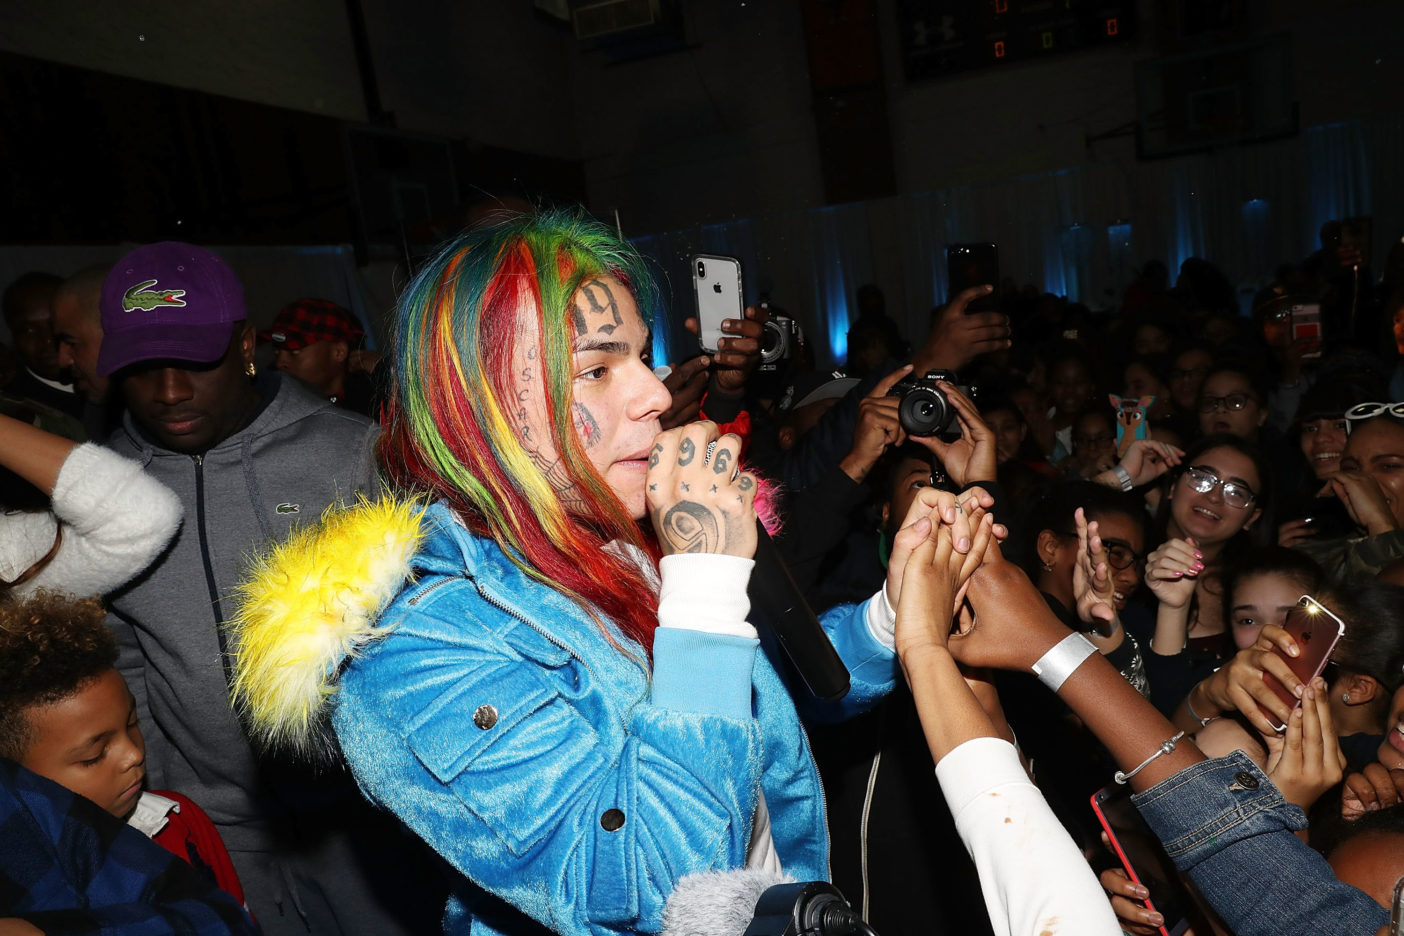 Another Anime Wallpaper Tekashi69 Accused Of Staging His Own Kidnapping And Robbery